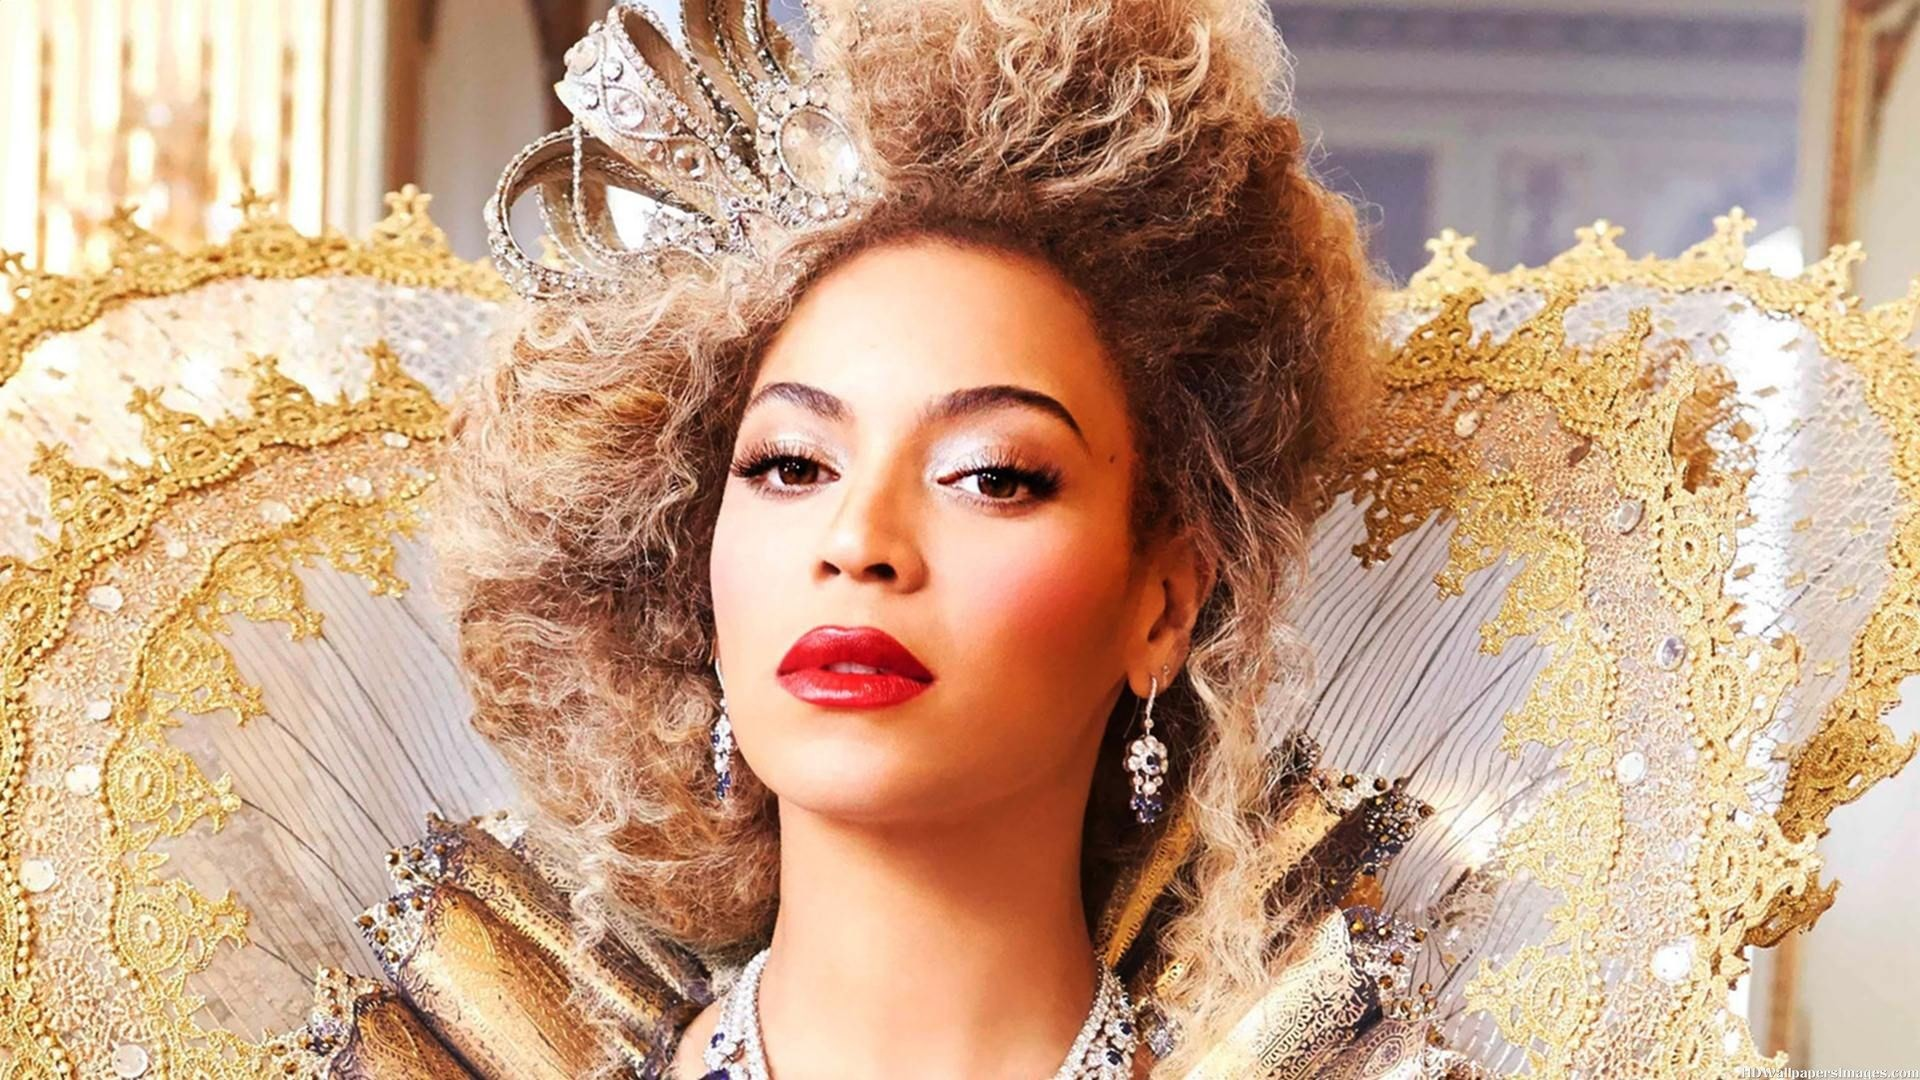 1172m Followers 0 Following 1649 Posts See Instagram photos and videos from Beyoncé beyonce